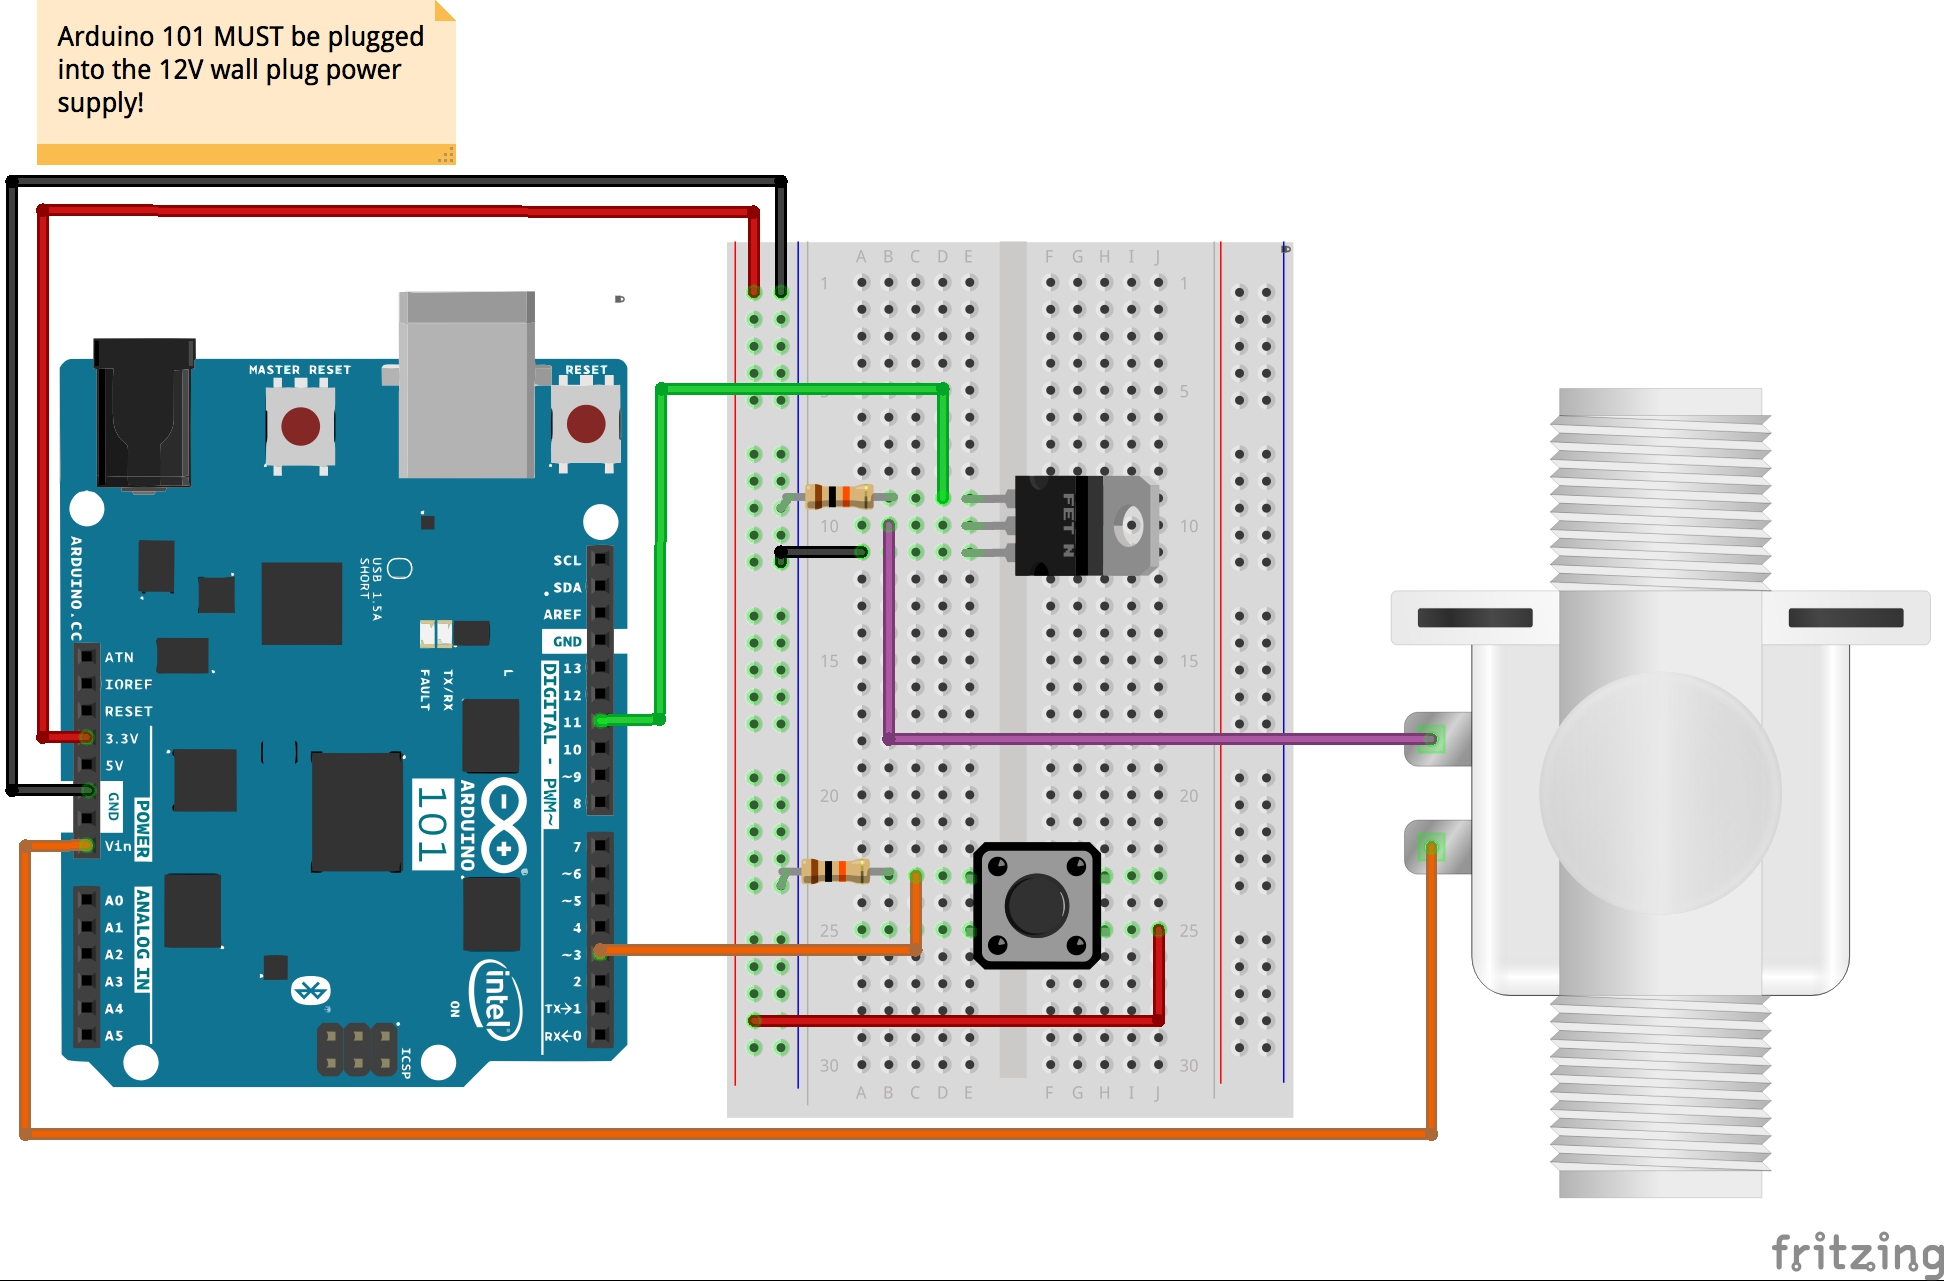 How To Wire Up Solenoid Valve: Smart Home Expansion Kit for Arduino 101 - learn.sparkfun.comrh:learn.sparkfun.com,Design